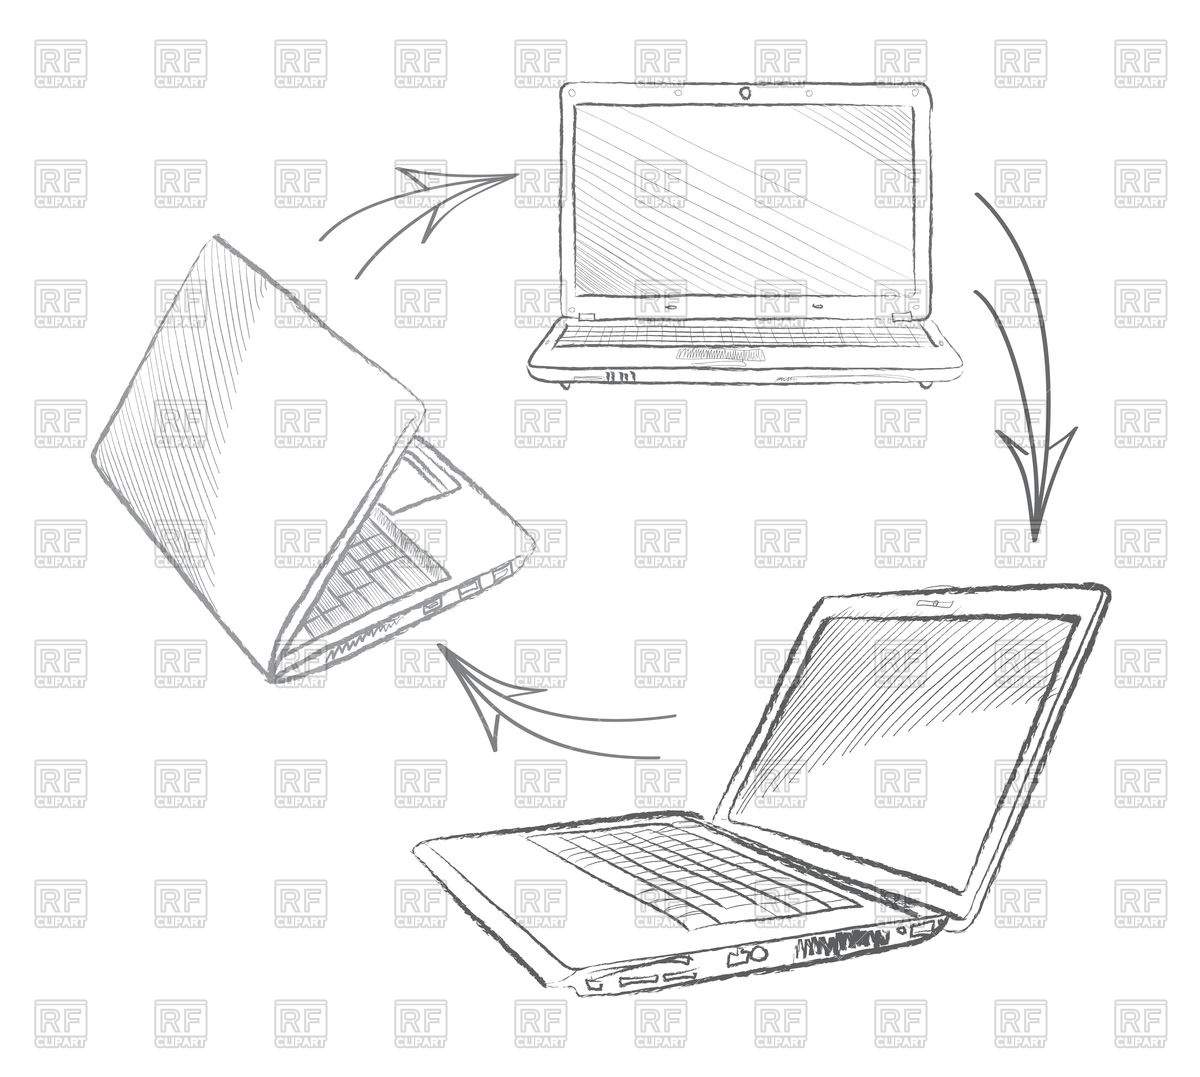 hight resolution of 1200x1077 laptop in sketch style from different views and position royalty